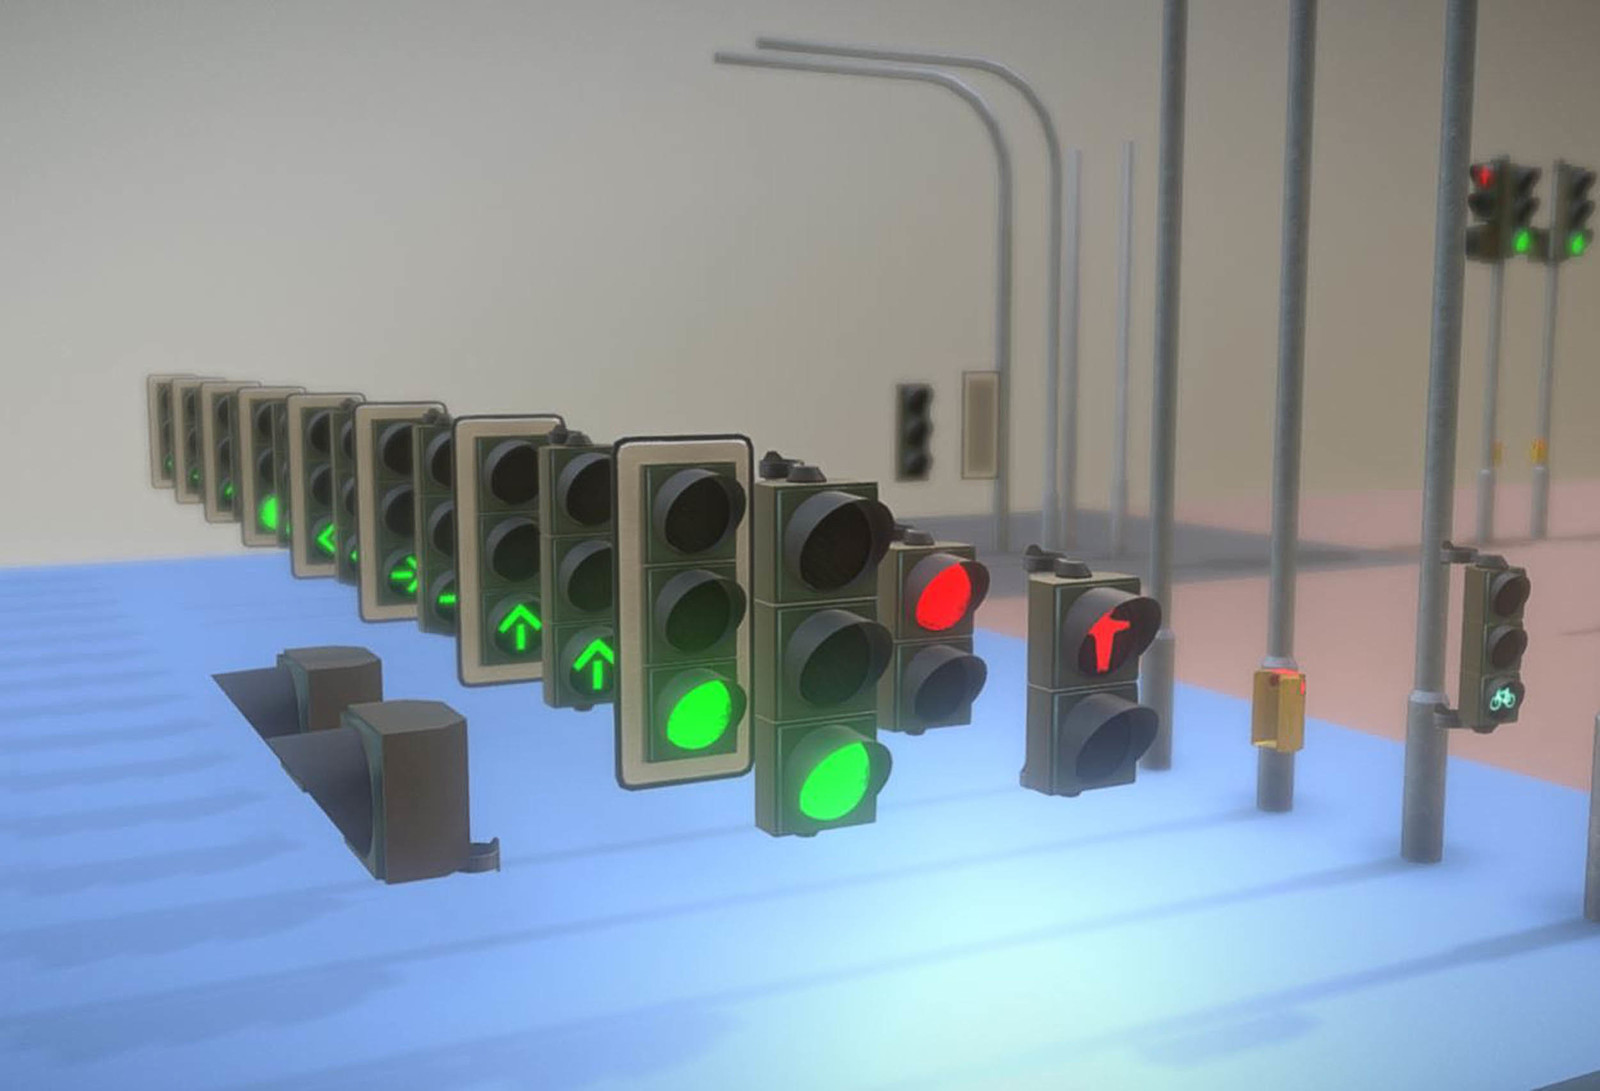 The animated traffic light modules.